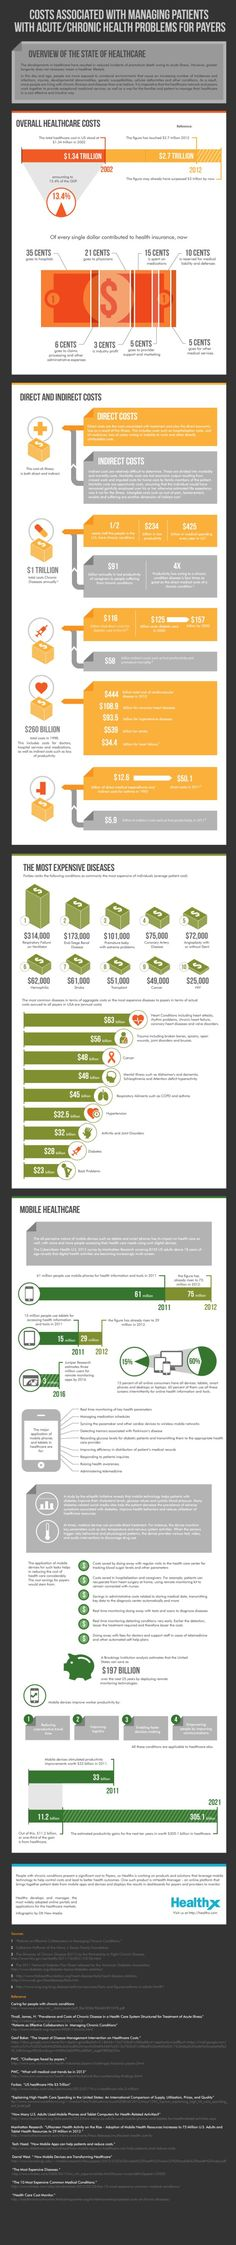 Costs Associated with Managing Patients with Acute / Chronic Health Problems for Payers [INFOGRAPHIC] | New Visions Healthcare Blog - www.healthcoverageally.com